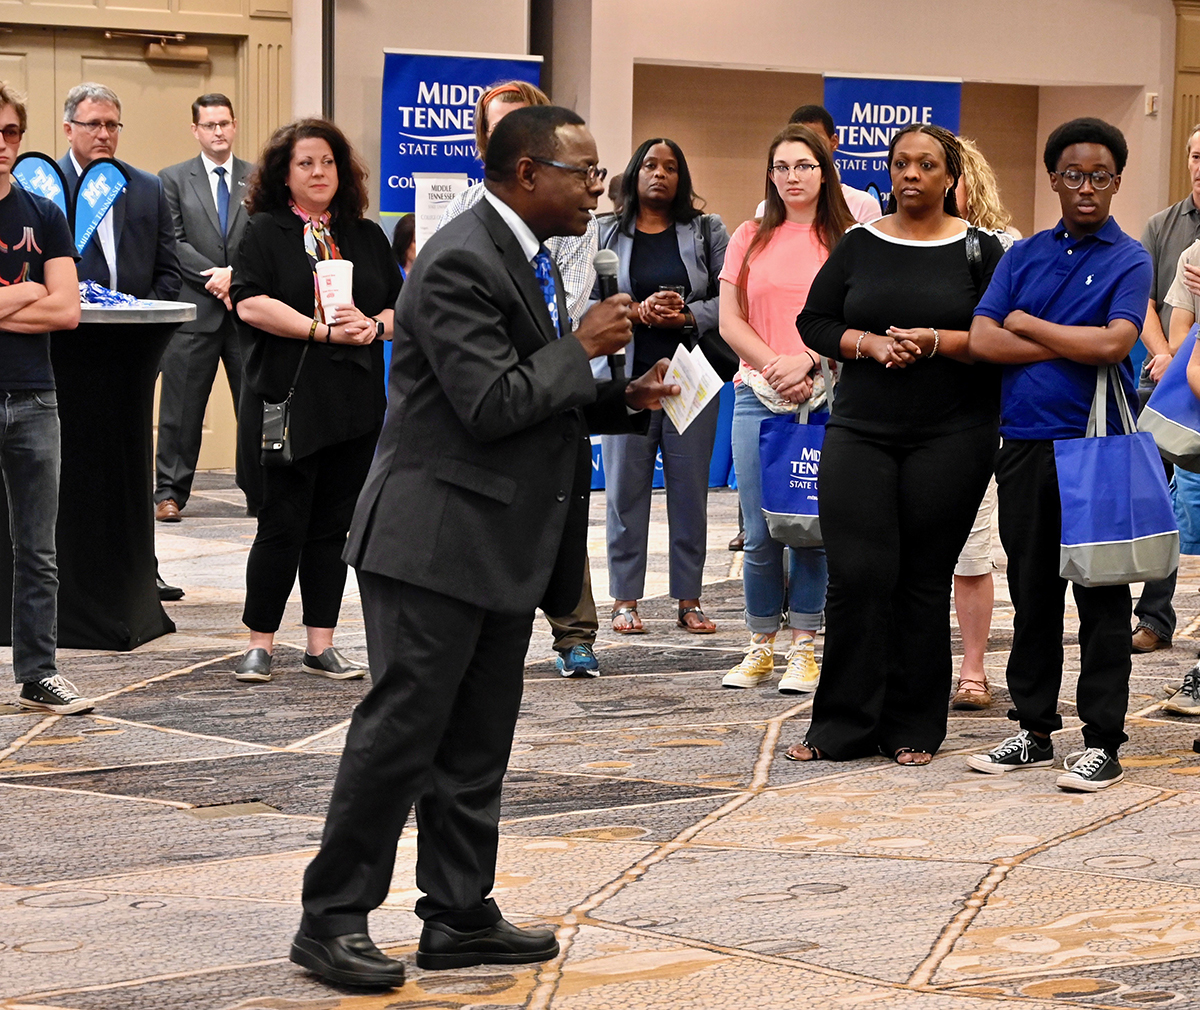 MTSU President Sidney A. McPhee shares with the crowd attending the Birmingham, Ala., MTSU True Blue Tour event Thursday, Sept. 26, at the Marriott the benefits of coming to the Murfreesboro university and guaranteed scholarships. (MTSU photo by Andrew Oppmann)